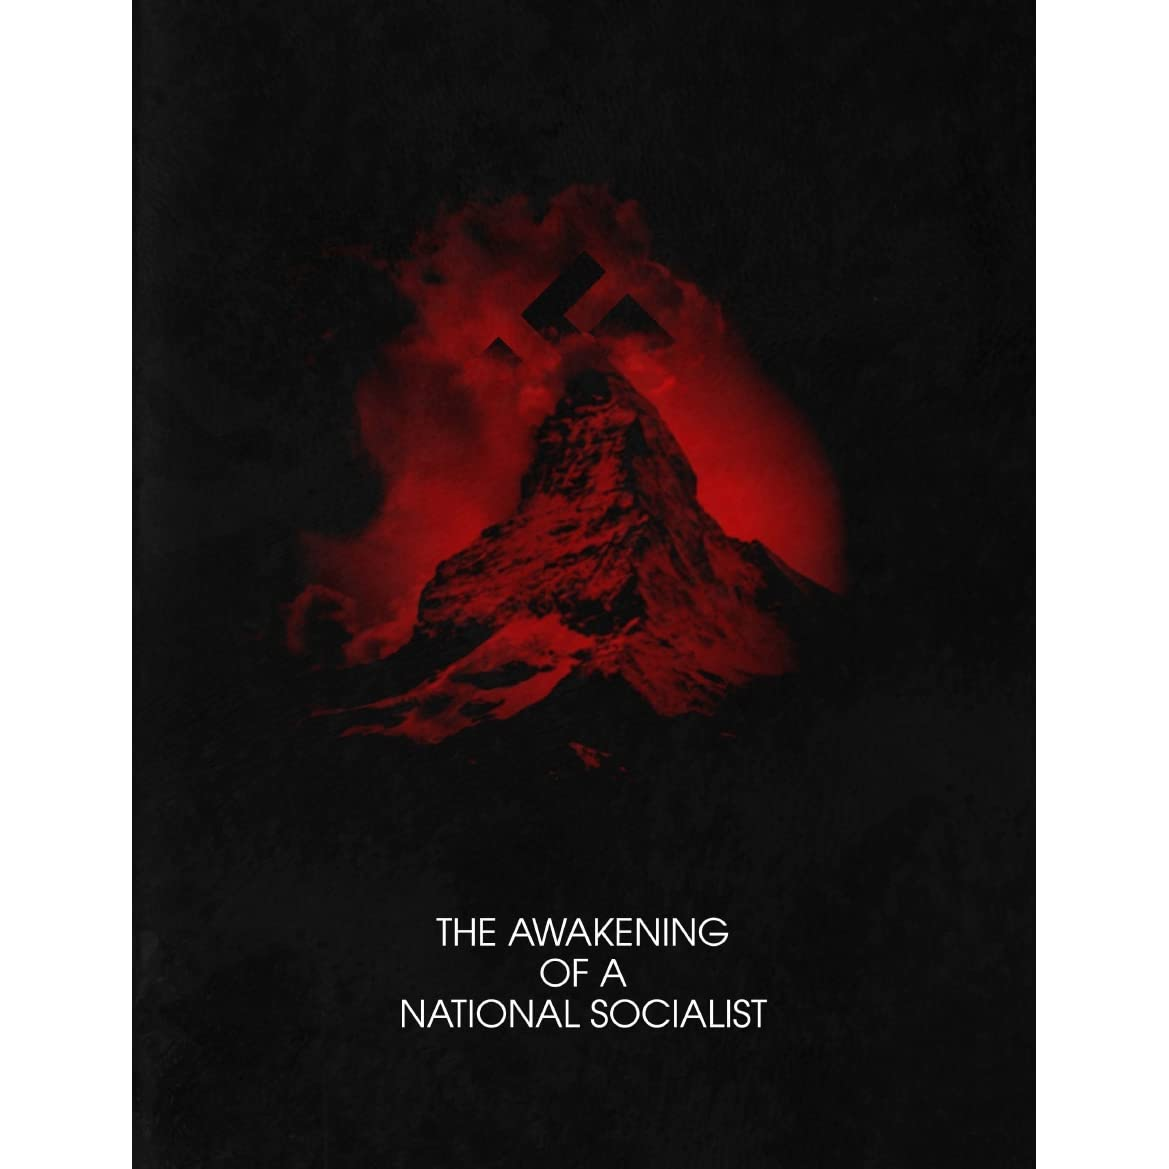 The Awakening Of A National Socialist by Alexander Slavros